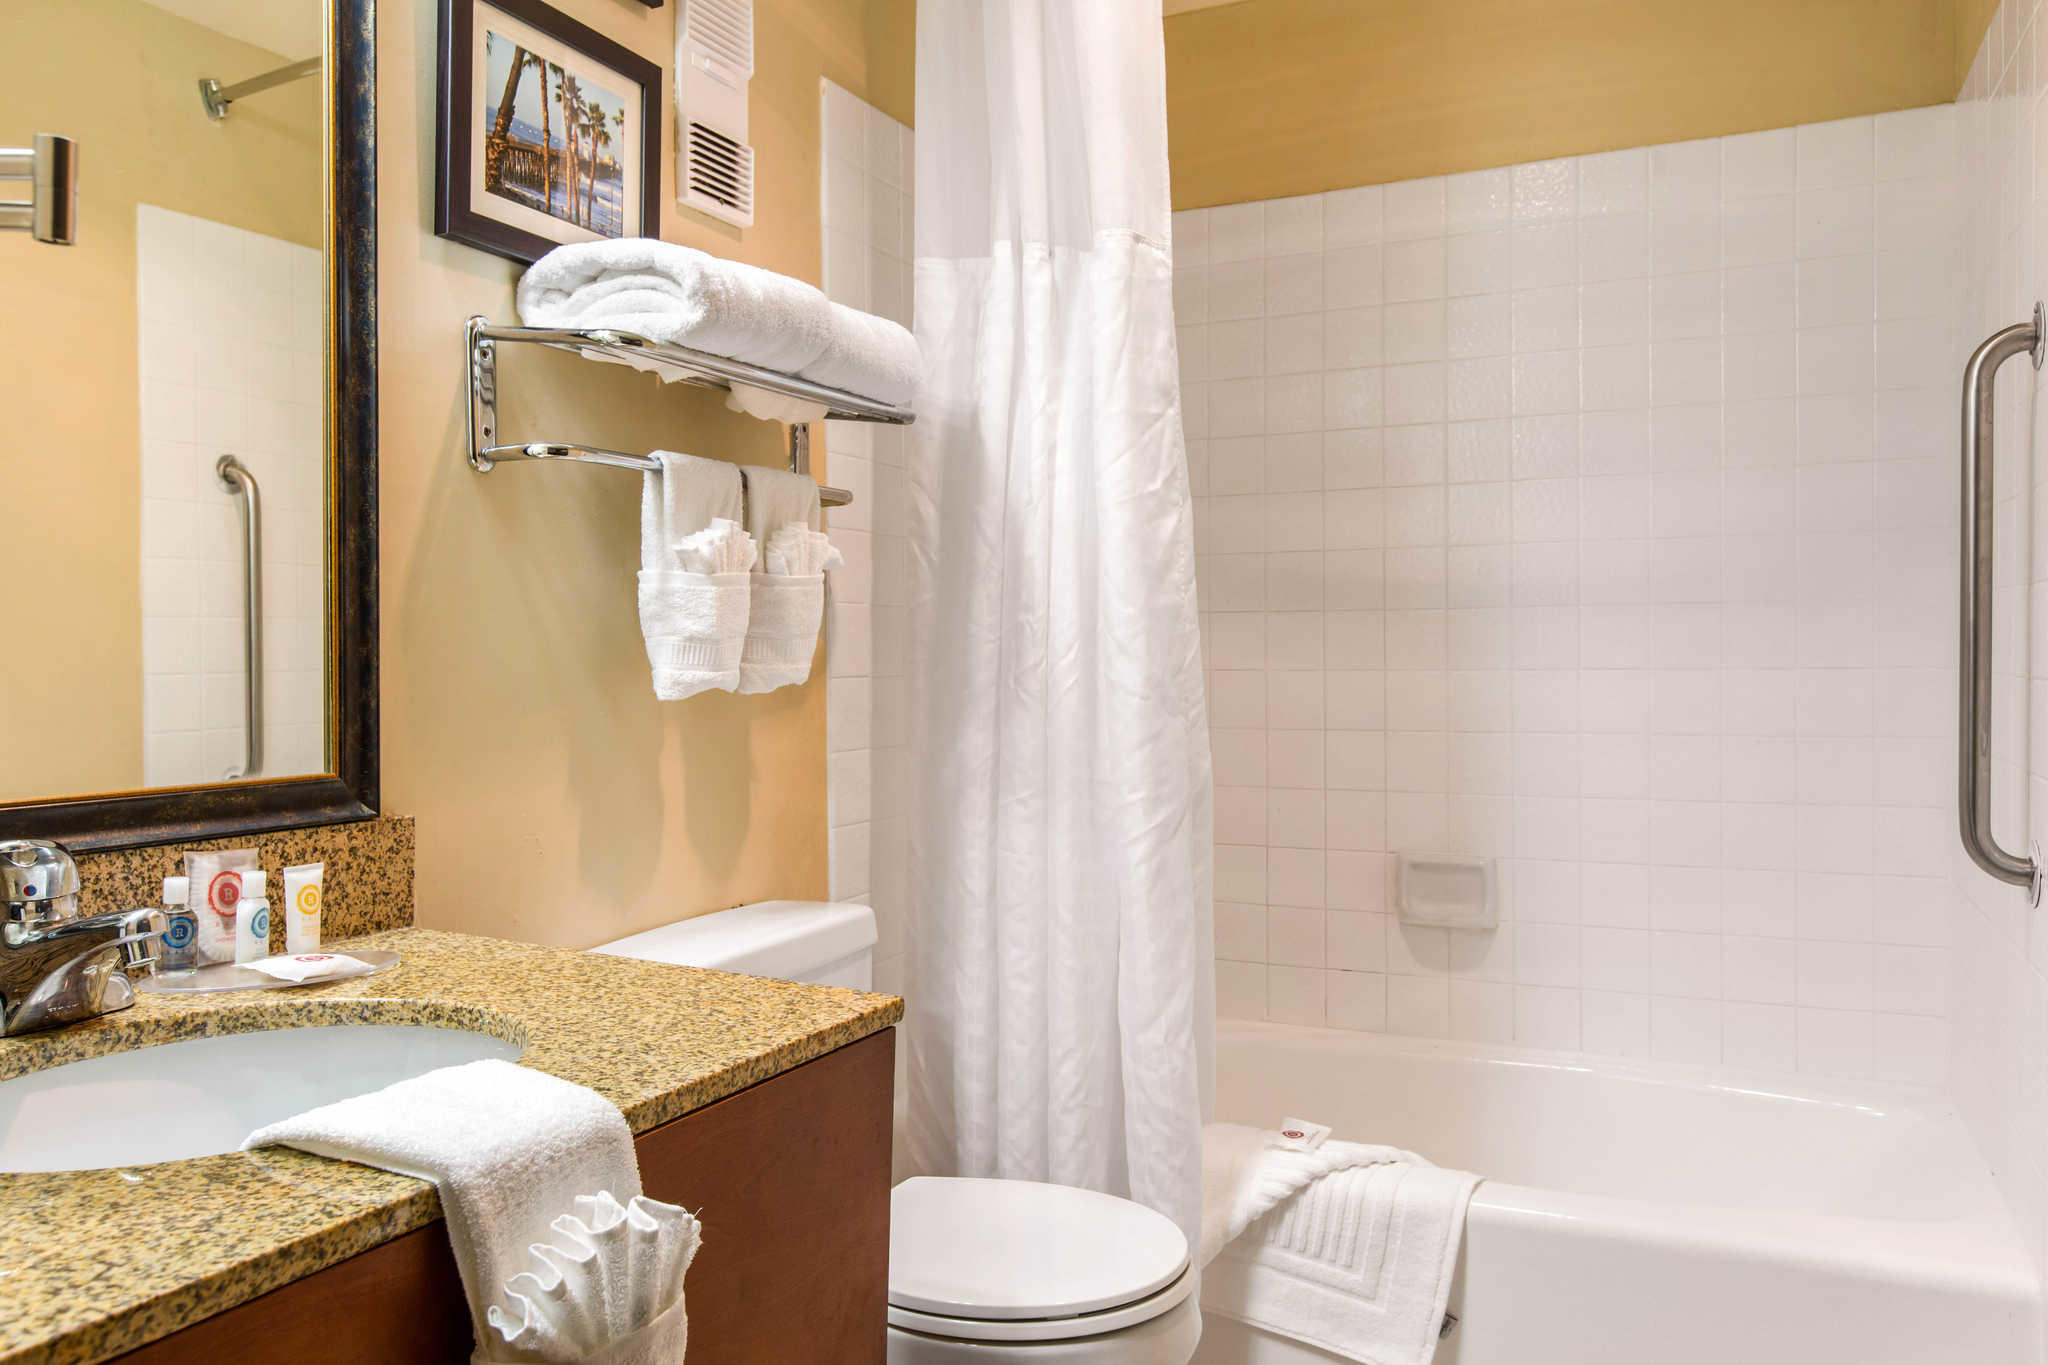 Rooms For Rent In San Diego North County